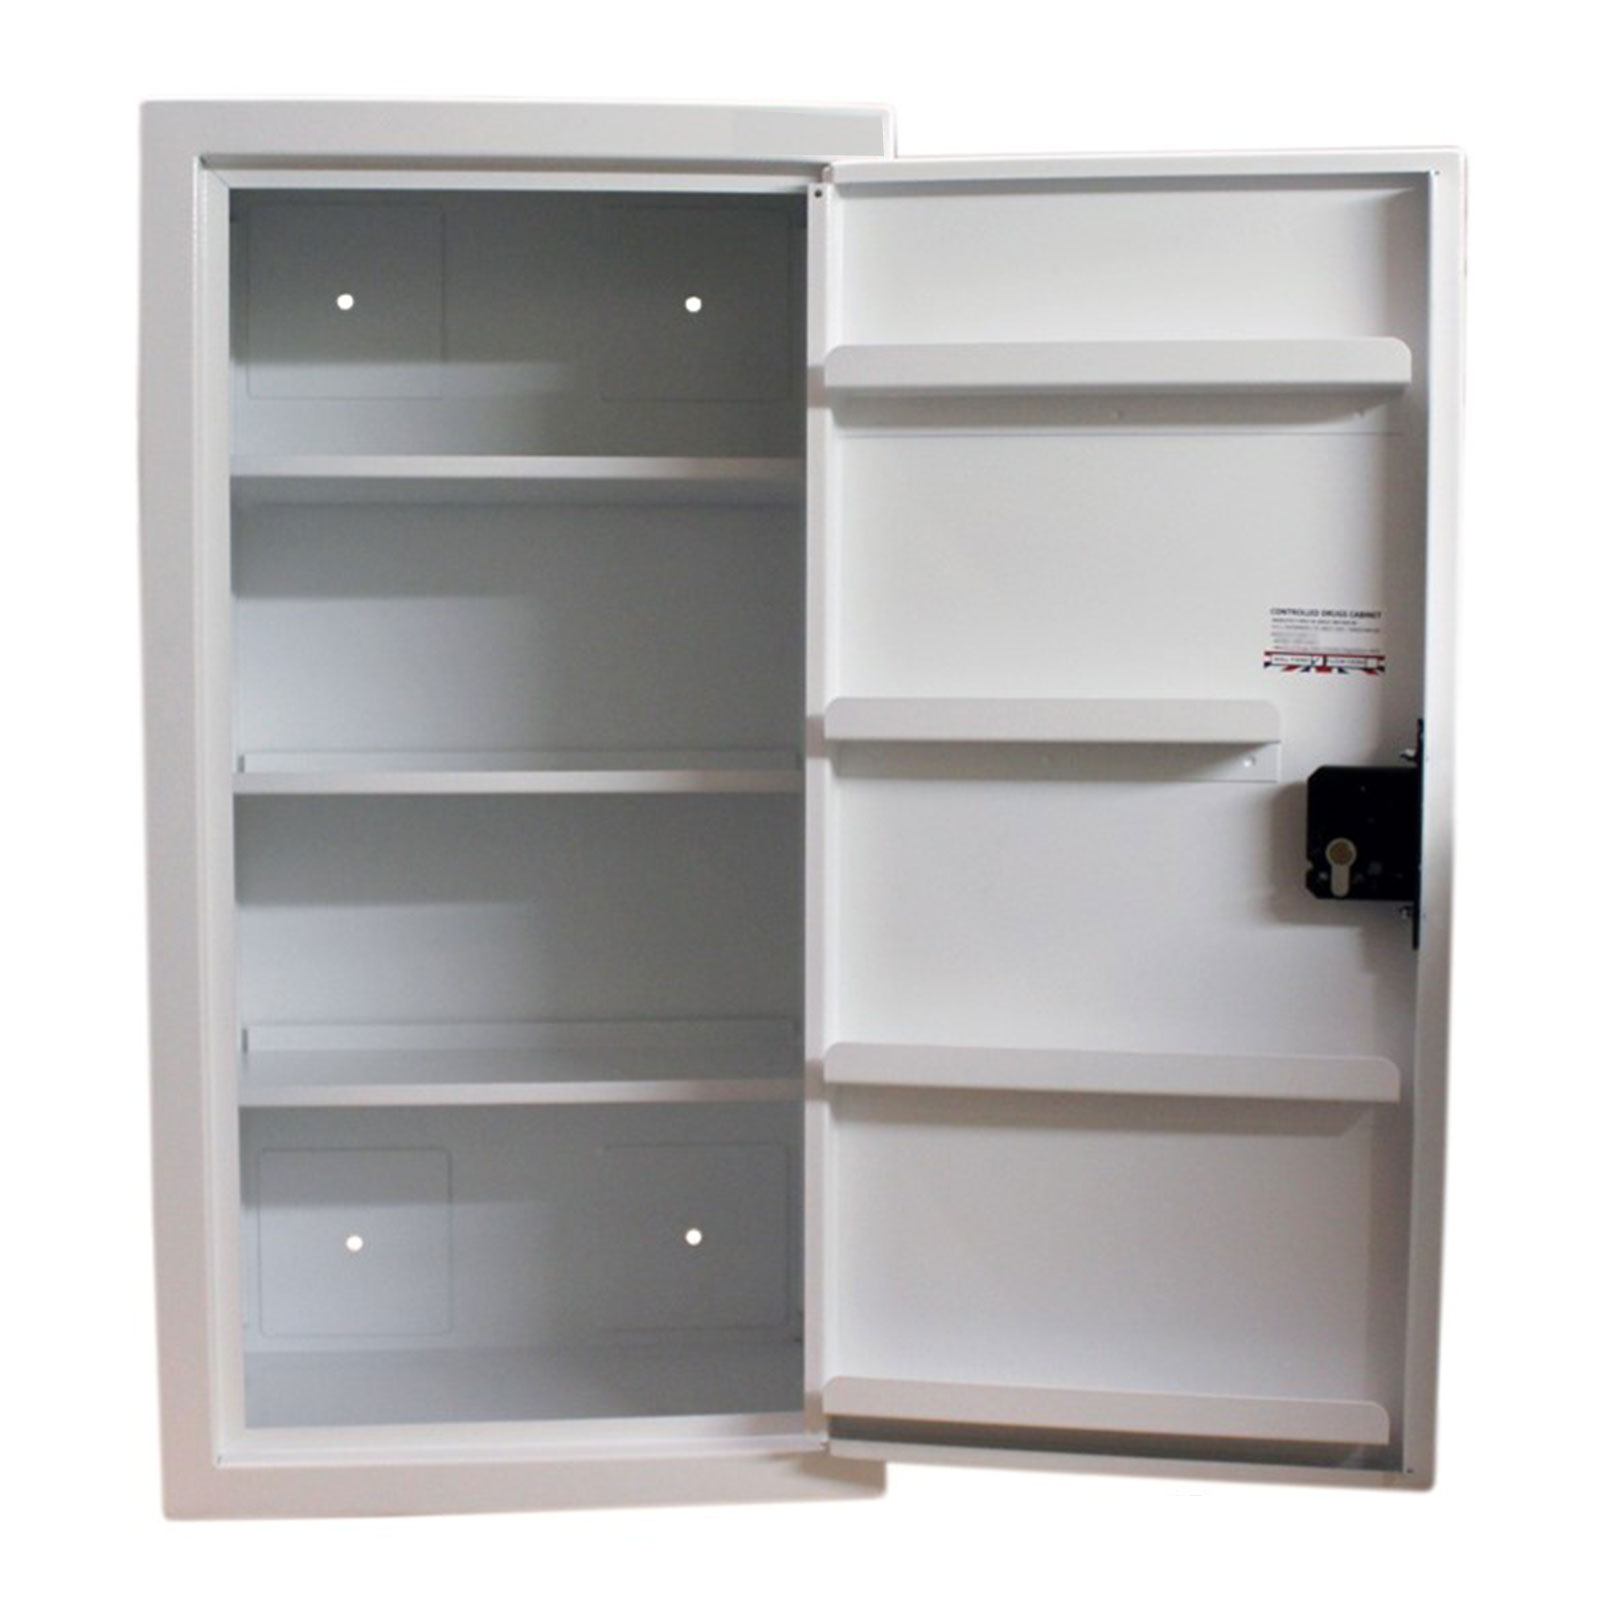 FPD 12367 Controlled Drugs Cabinet 127.5 Litre door open